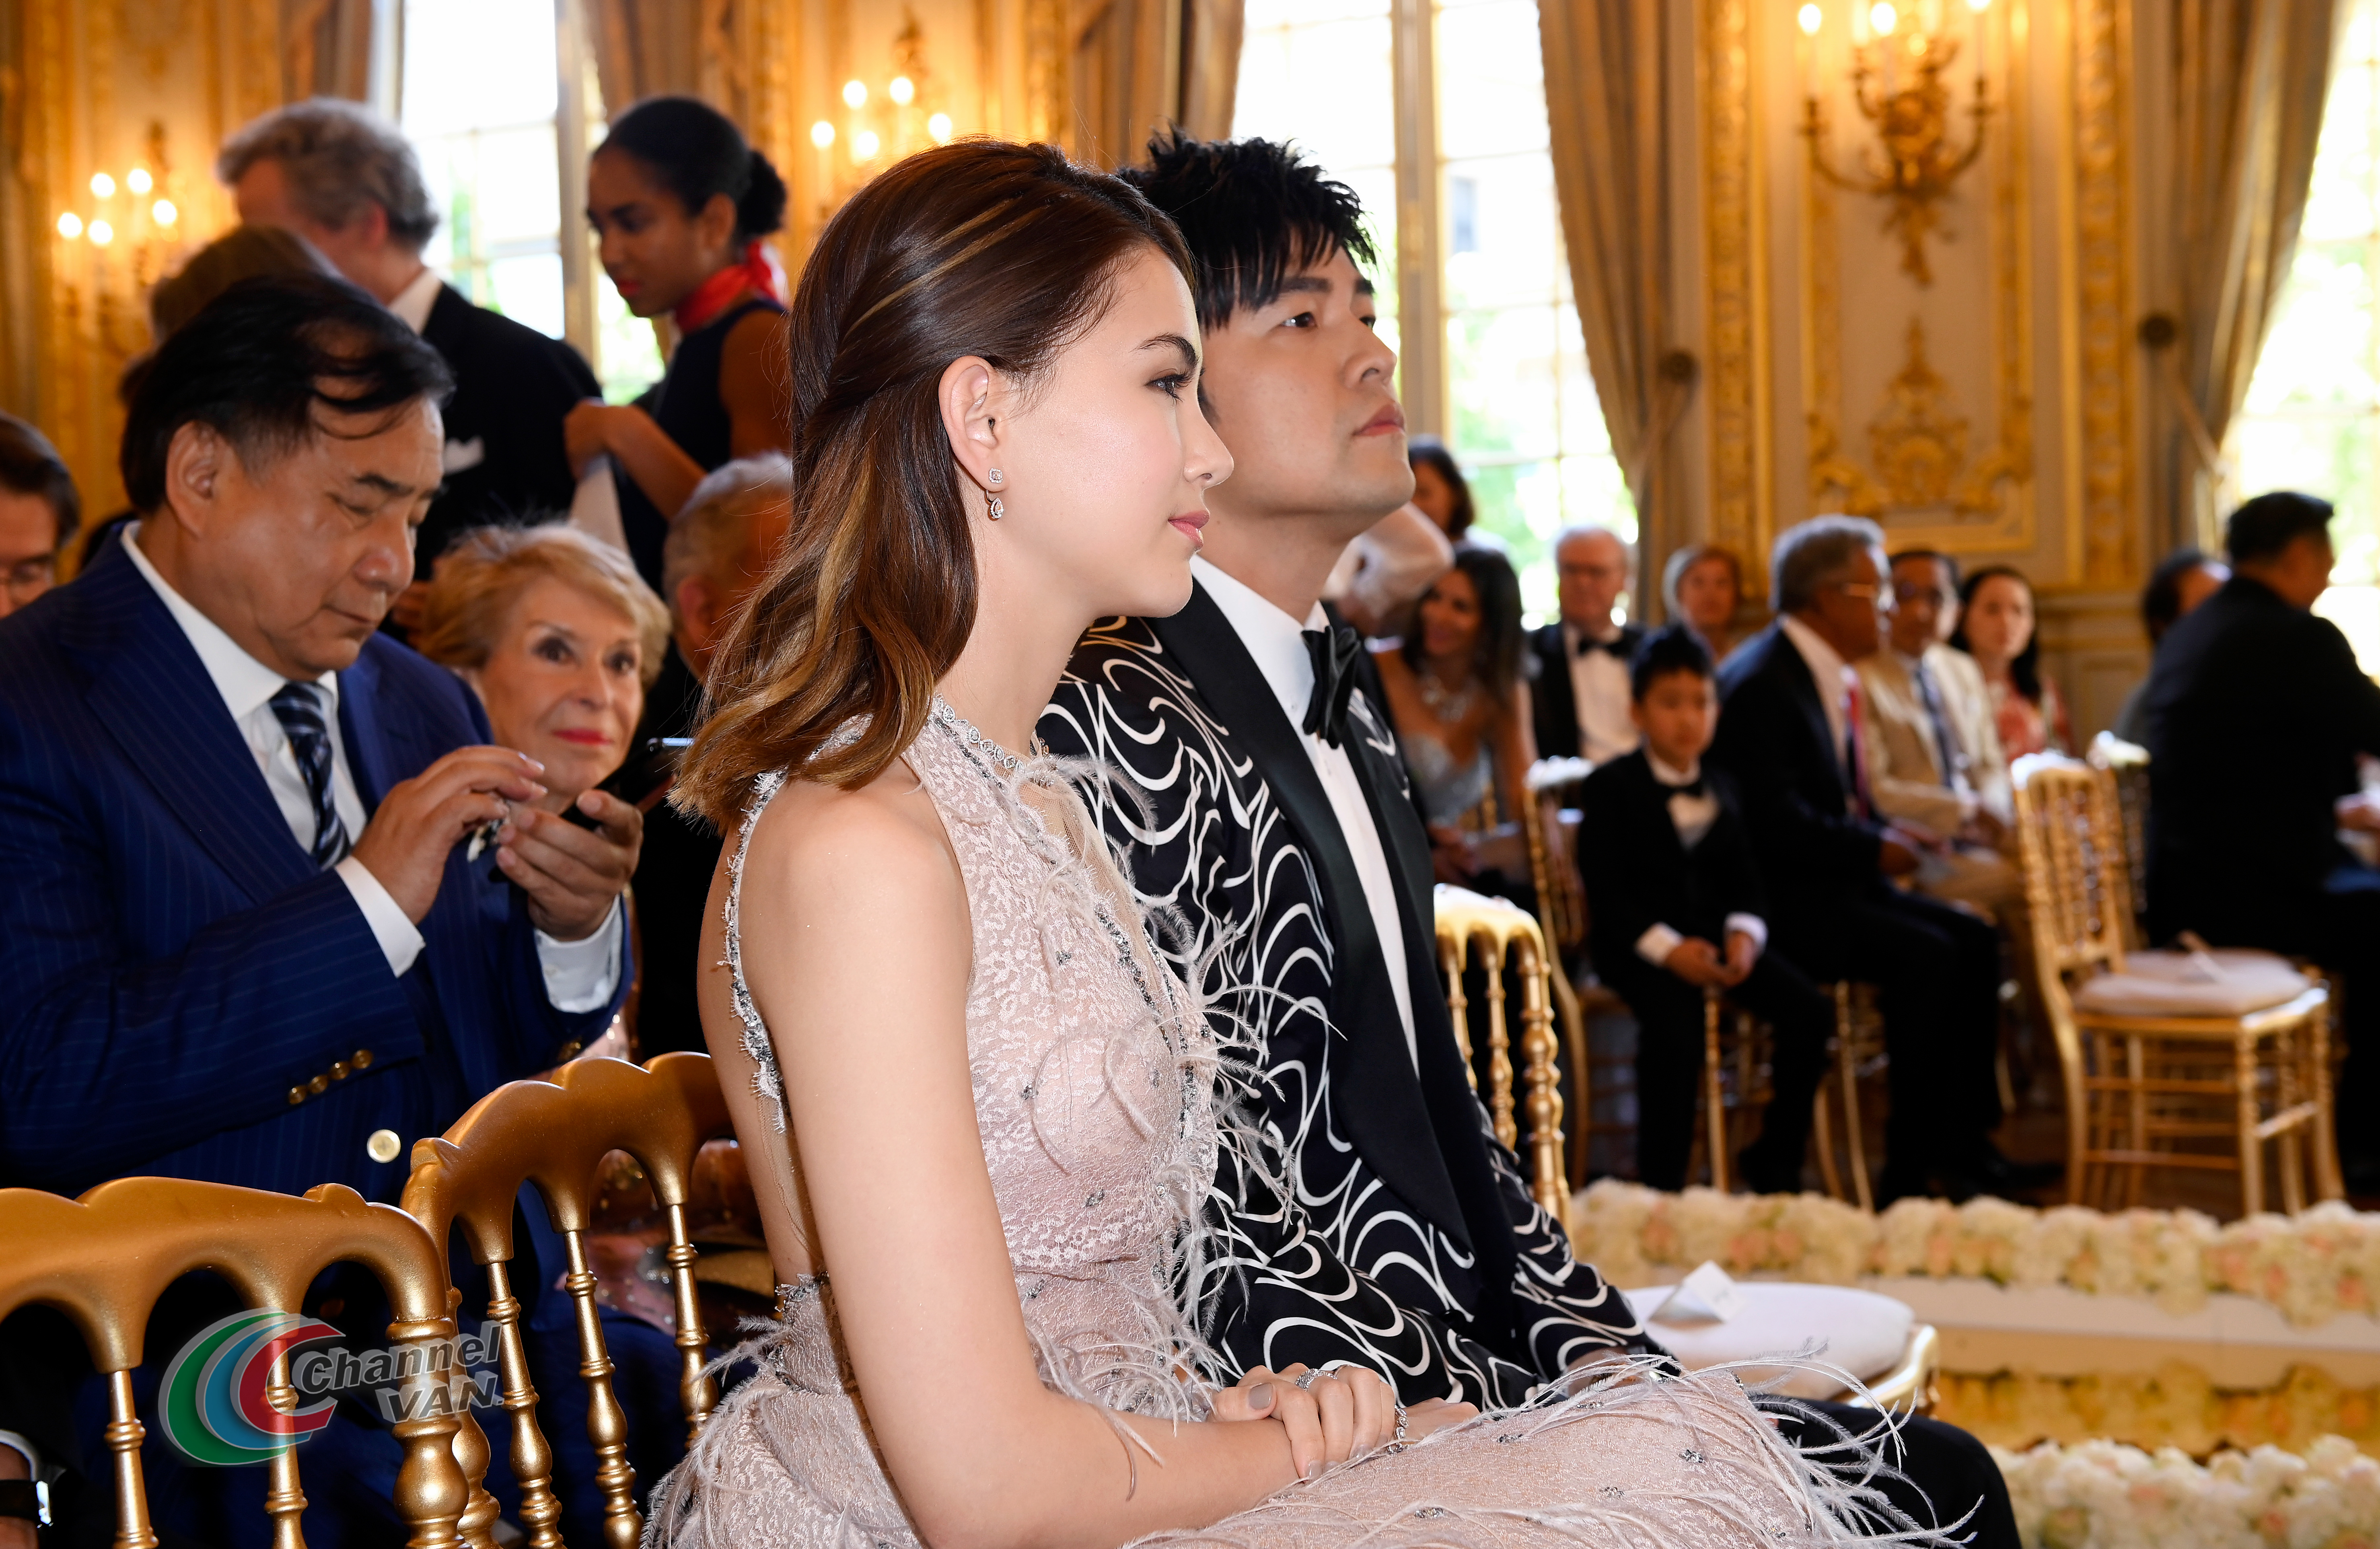 PARIS, FRANCE - JUNE 02: Jay Chou and Hannah Quinlivan attend Pianists Lang Lang & Gina Alice Cocktail Wedding at Hotel Shangri-La on June 02, 2019 in Paris, France. (Photo by Kristy Sparow/Getty Images for Moet Hennessy)